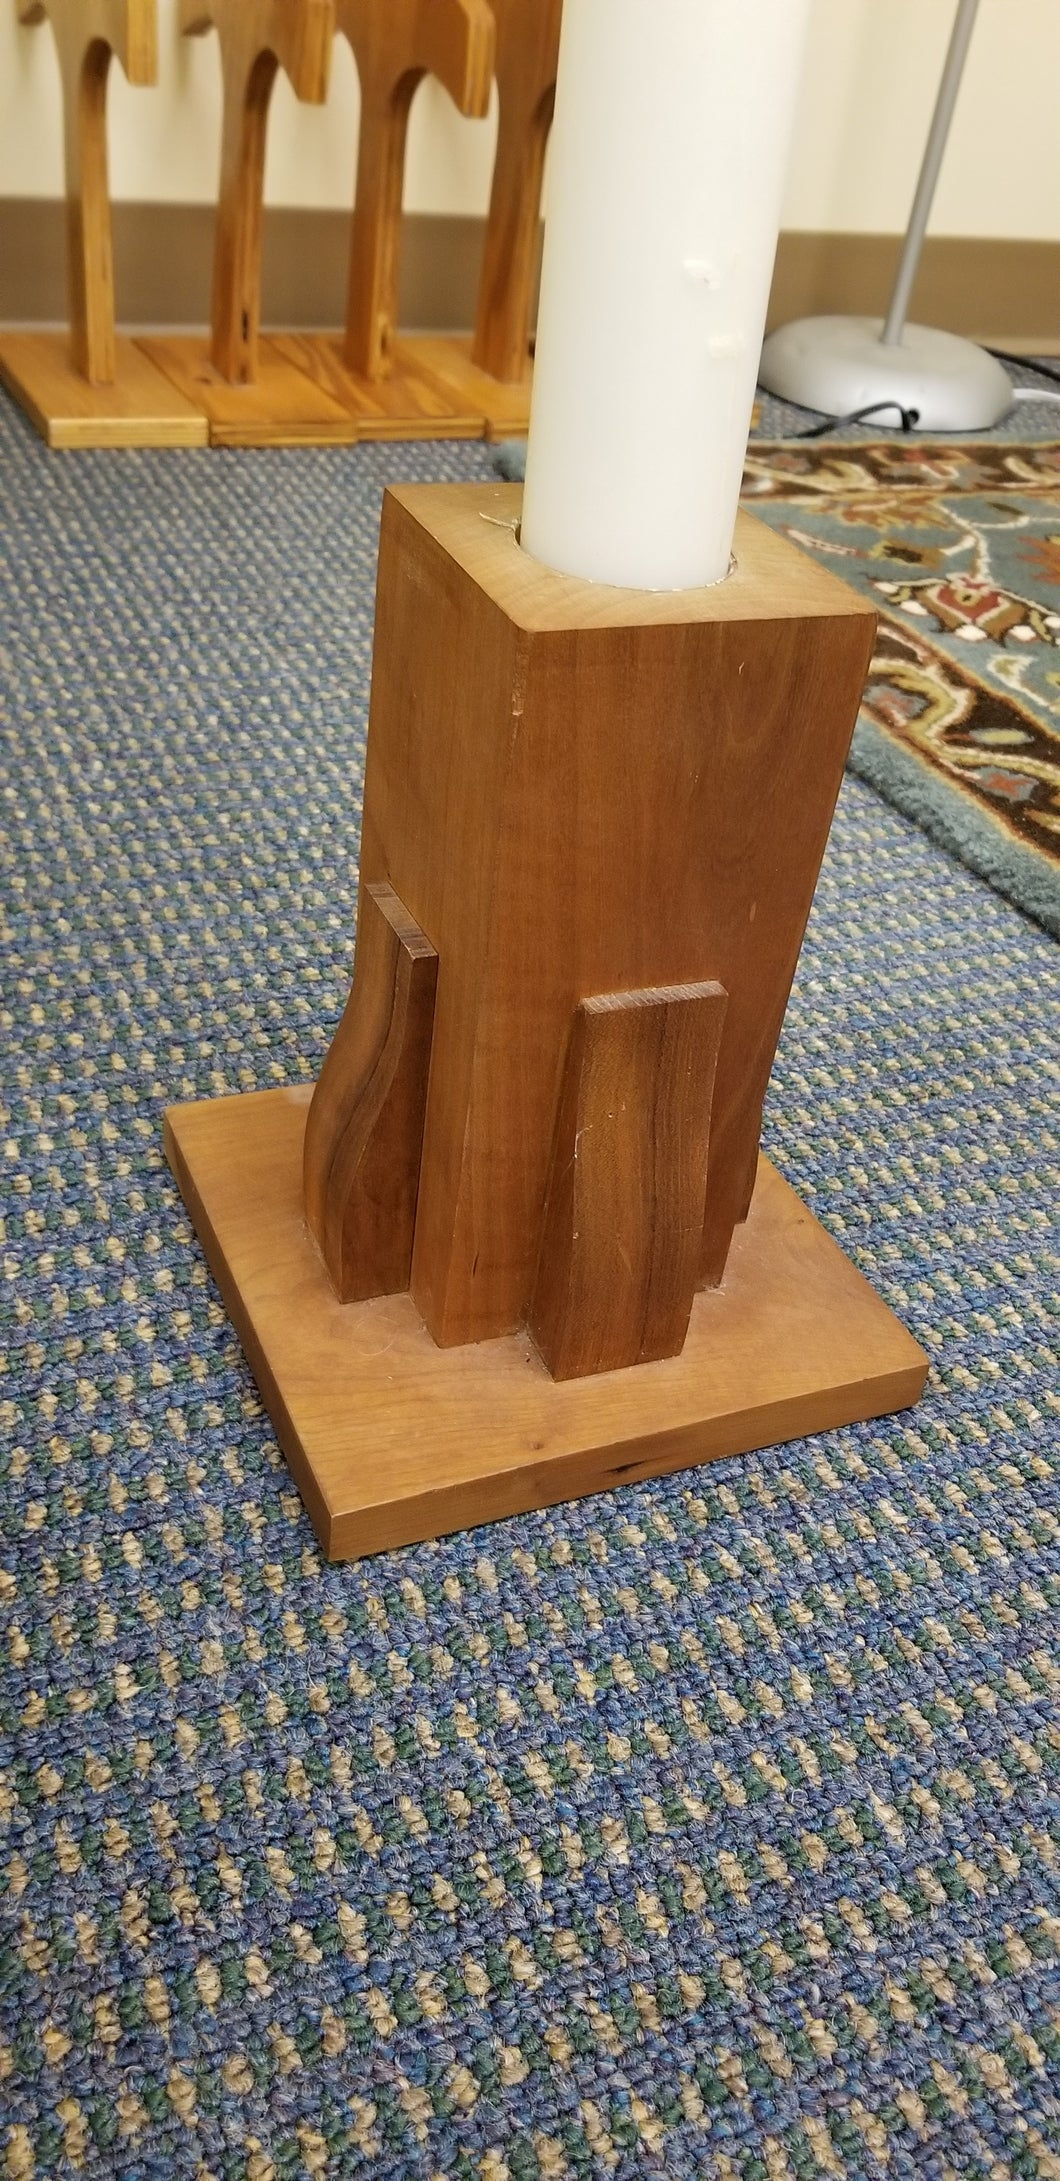 Sacristy Candle Holder (Altar)